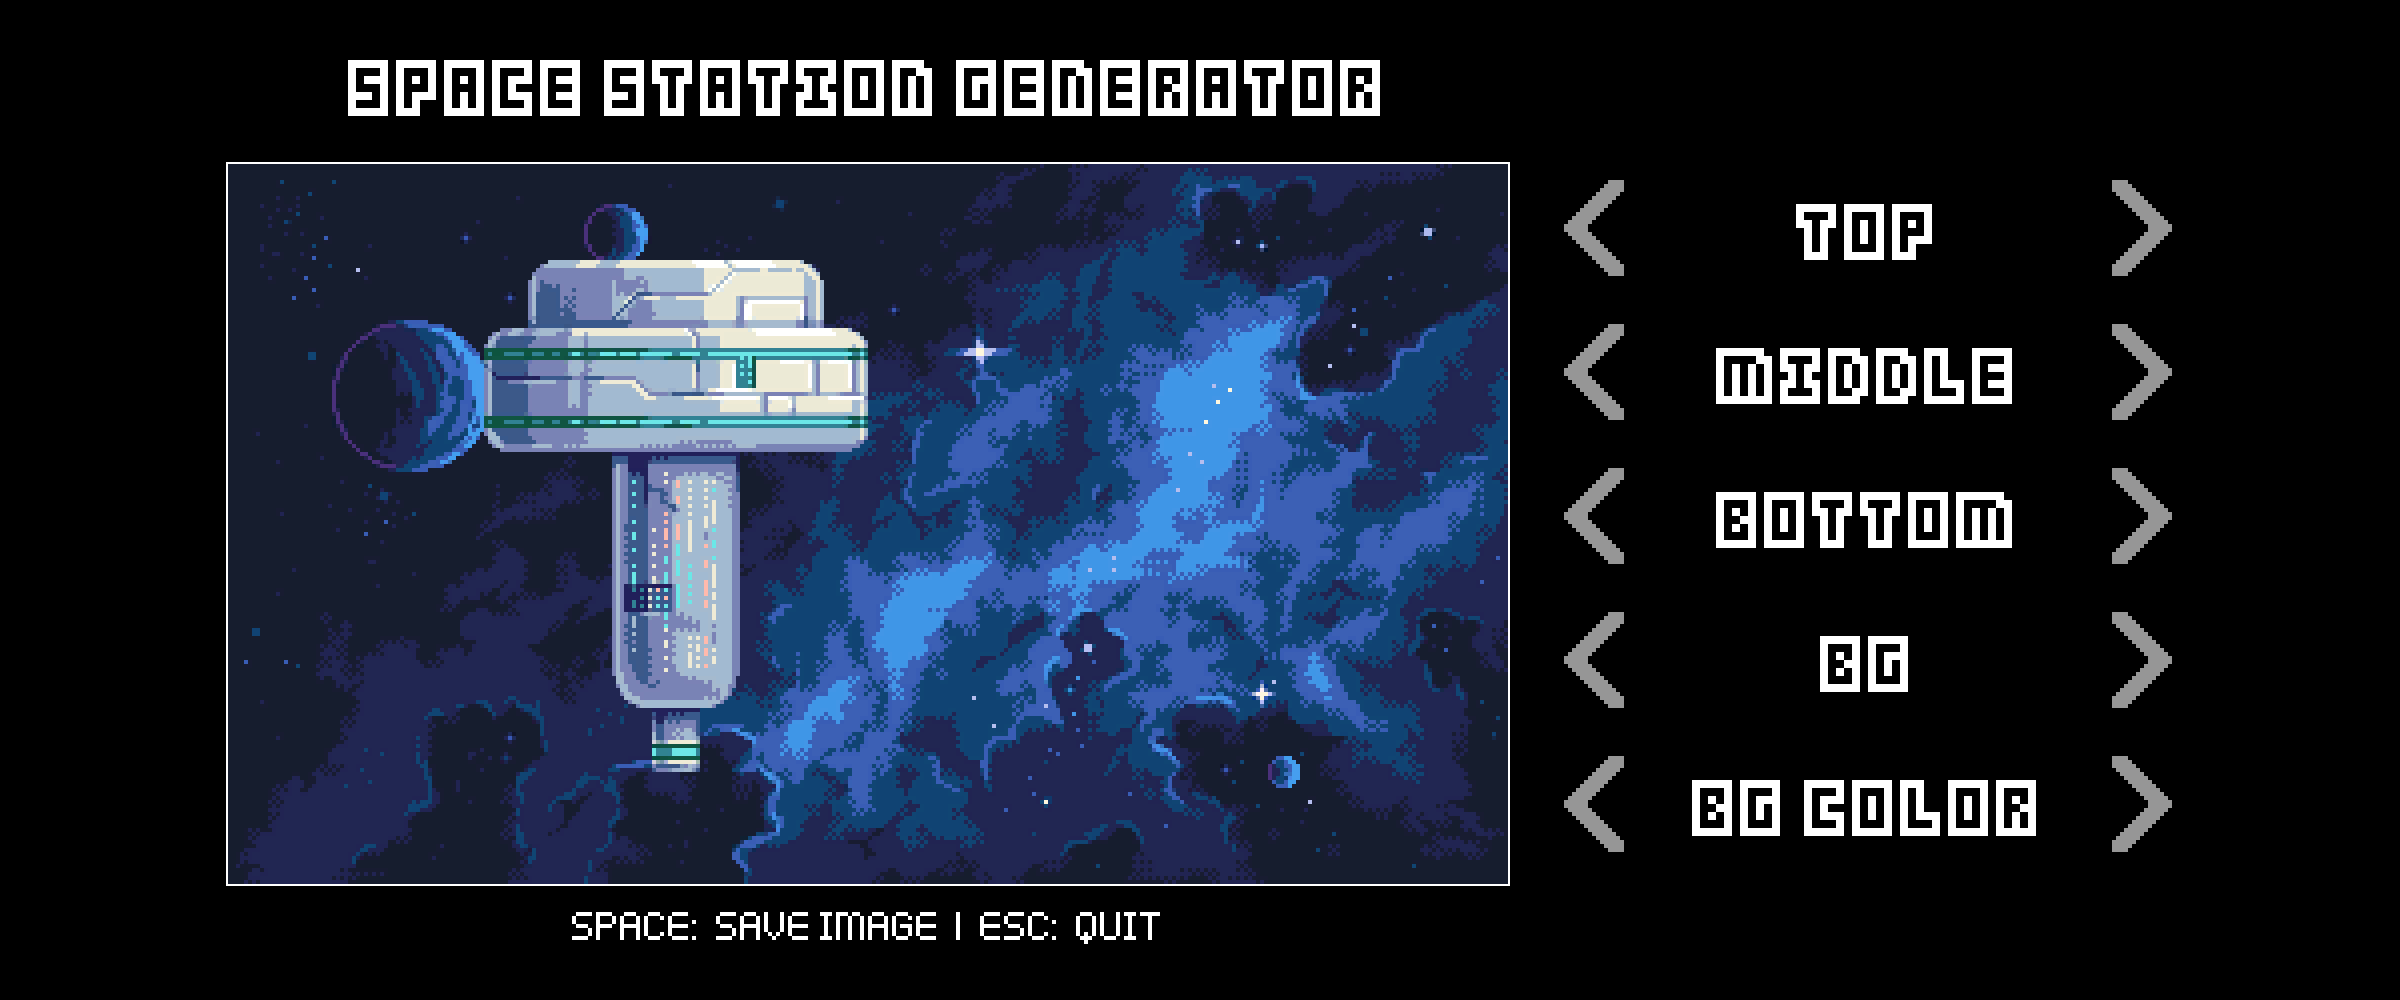 Space Station Generator